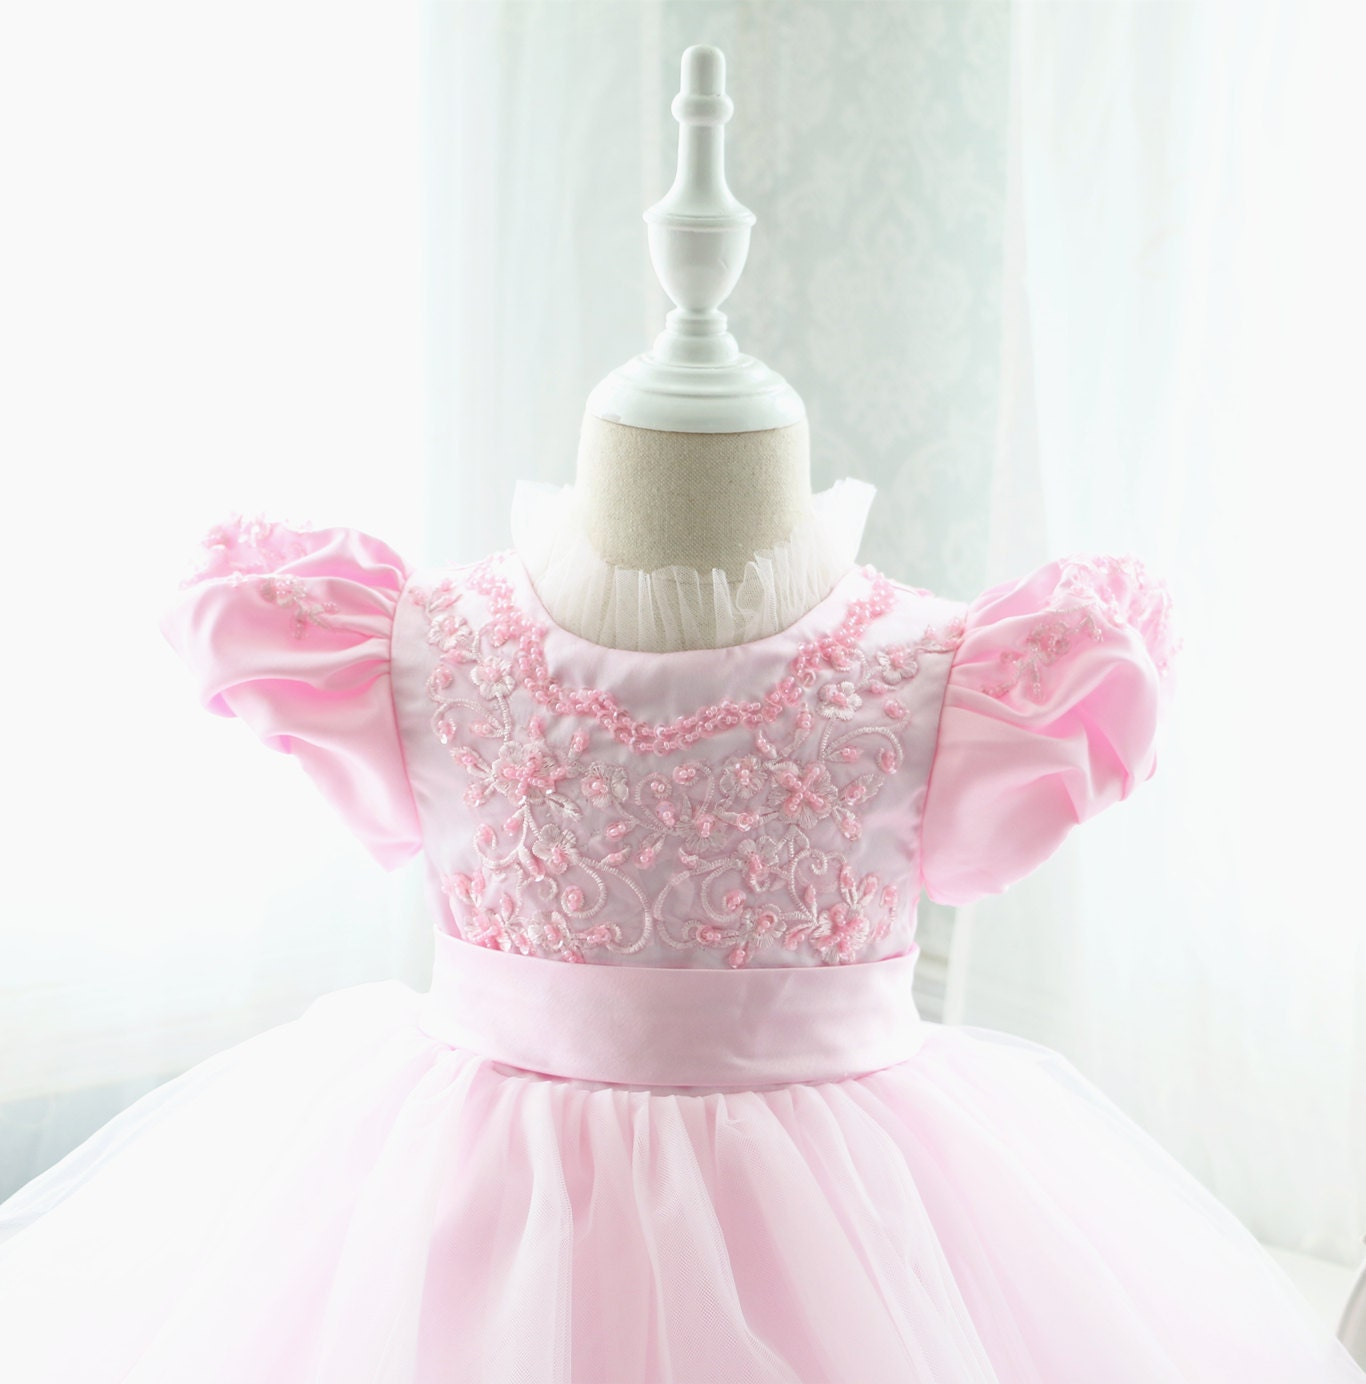 Blue christmas dress 4t - Pink Lace Top Baby Birthday Dress Thanksgiving Dress For Toddler Baby Christmas Dress